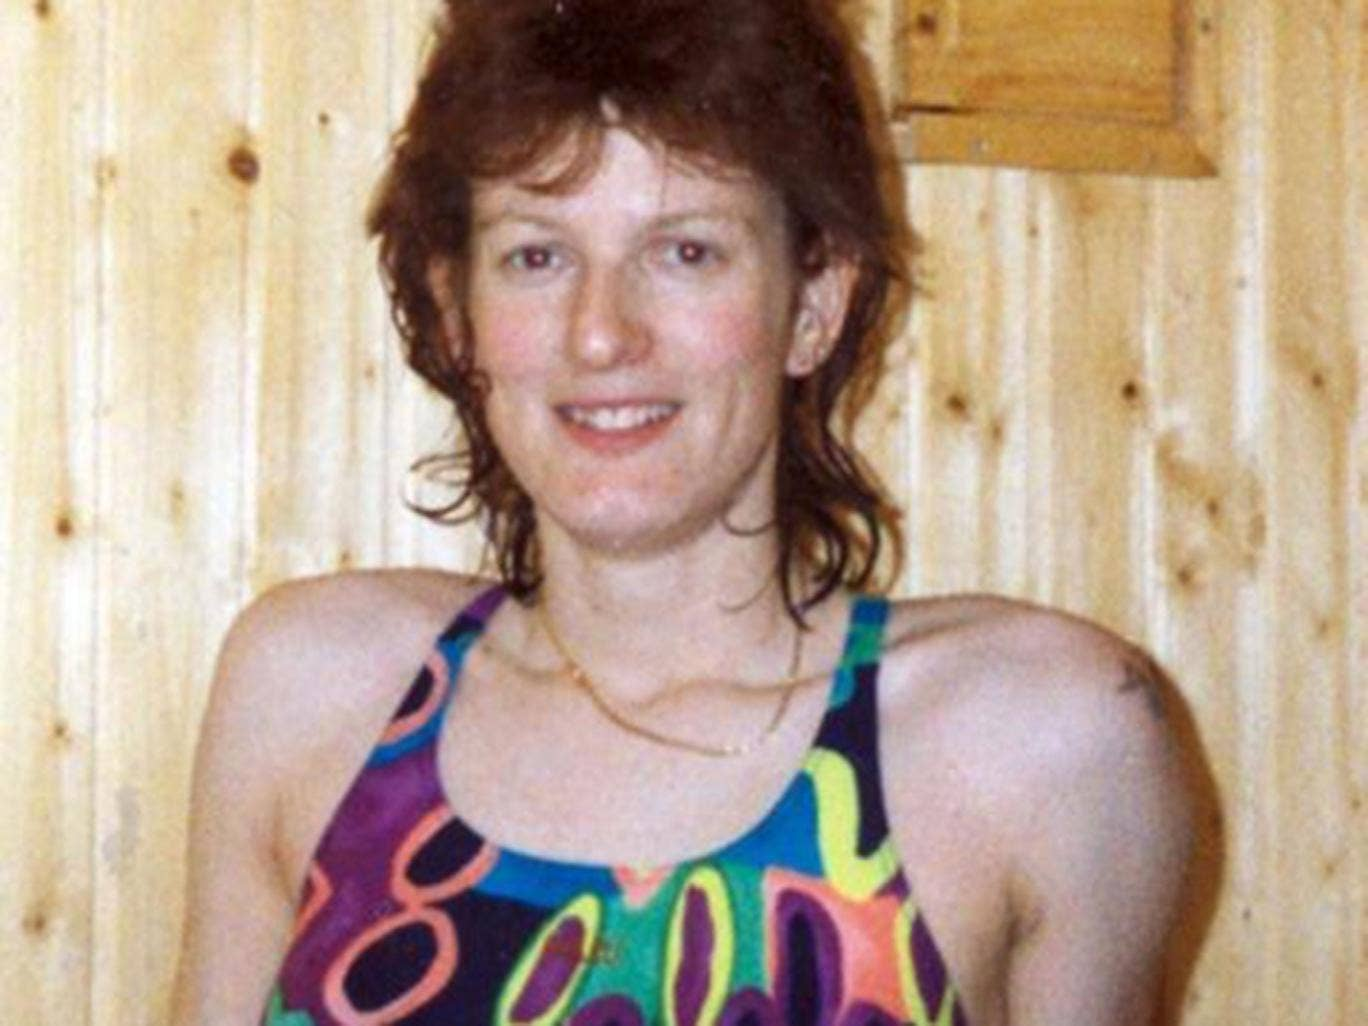 Dawn Walker, the former girlfriend of Kevin Nunn, who is serving life in prison for her murder